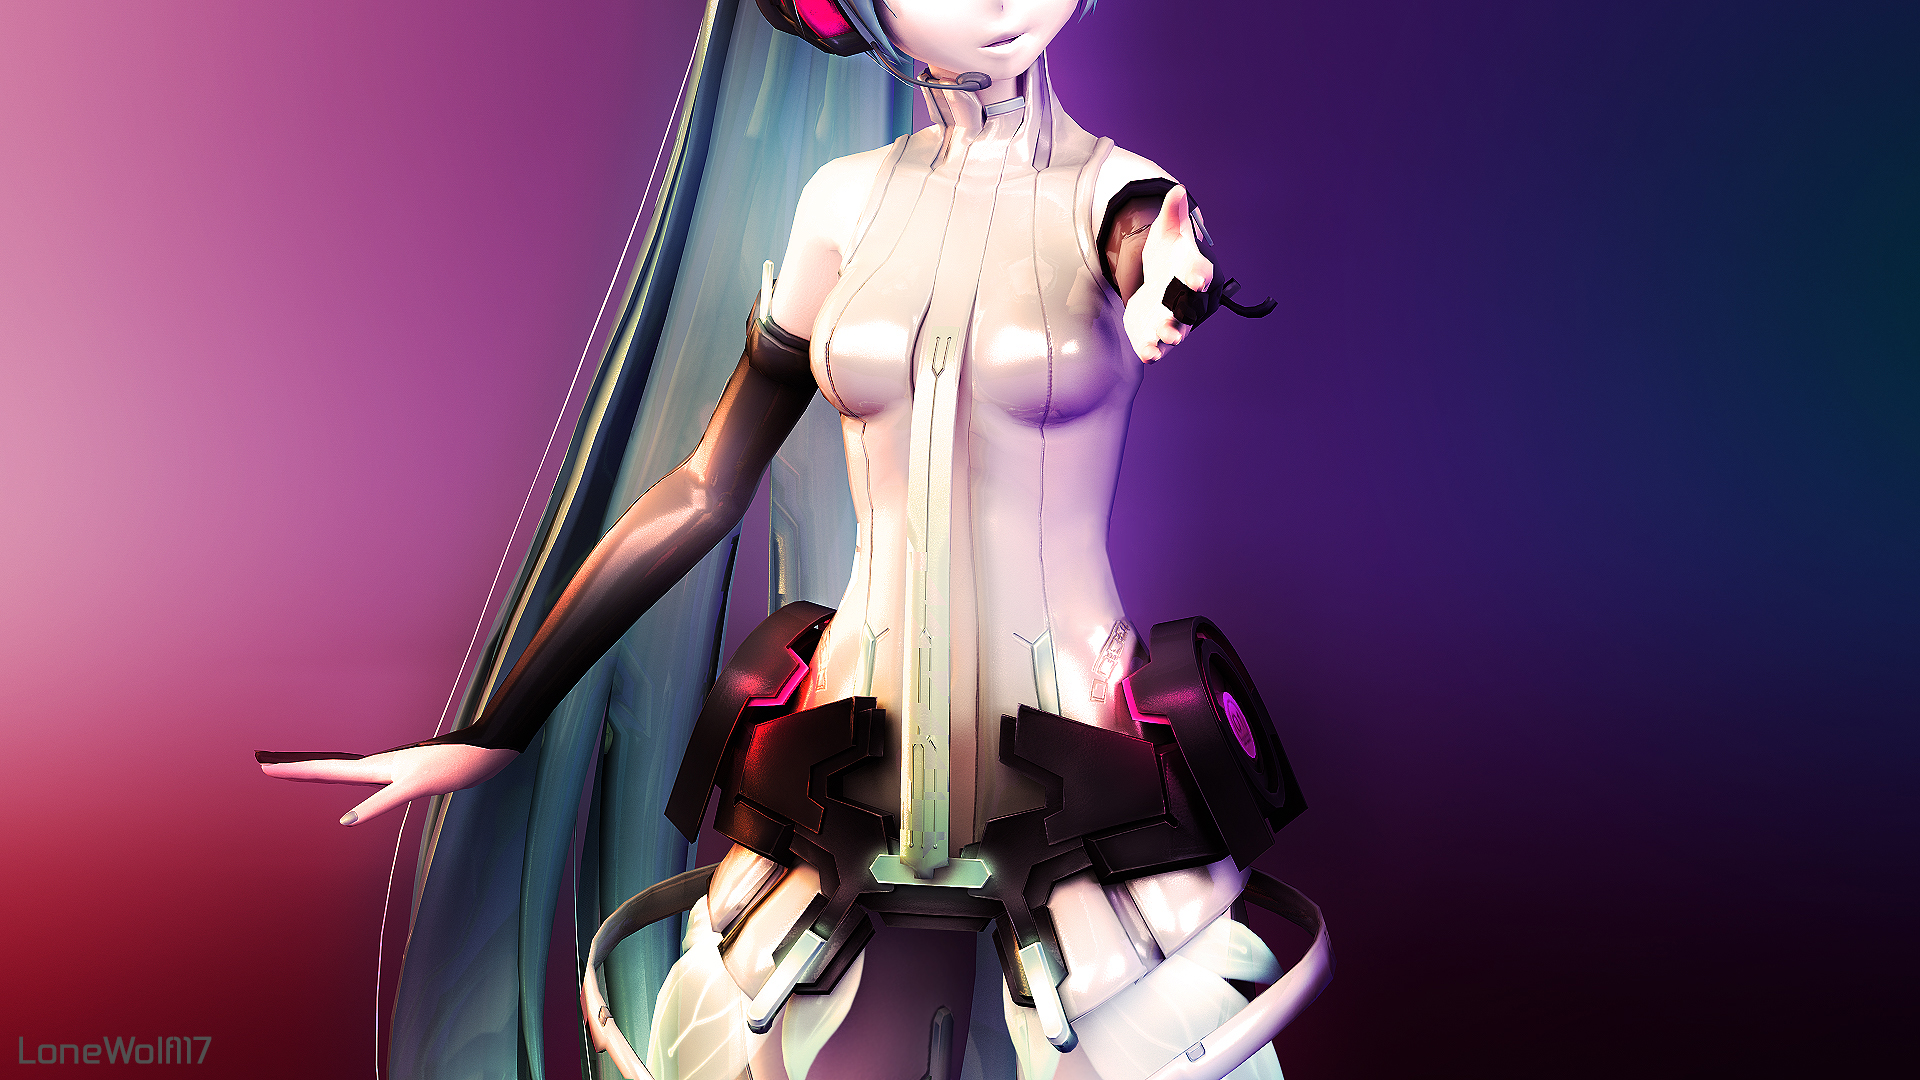 Miku: A Whisper to the Future by LoneWolf117